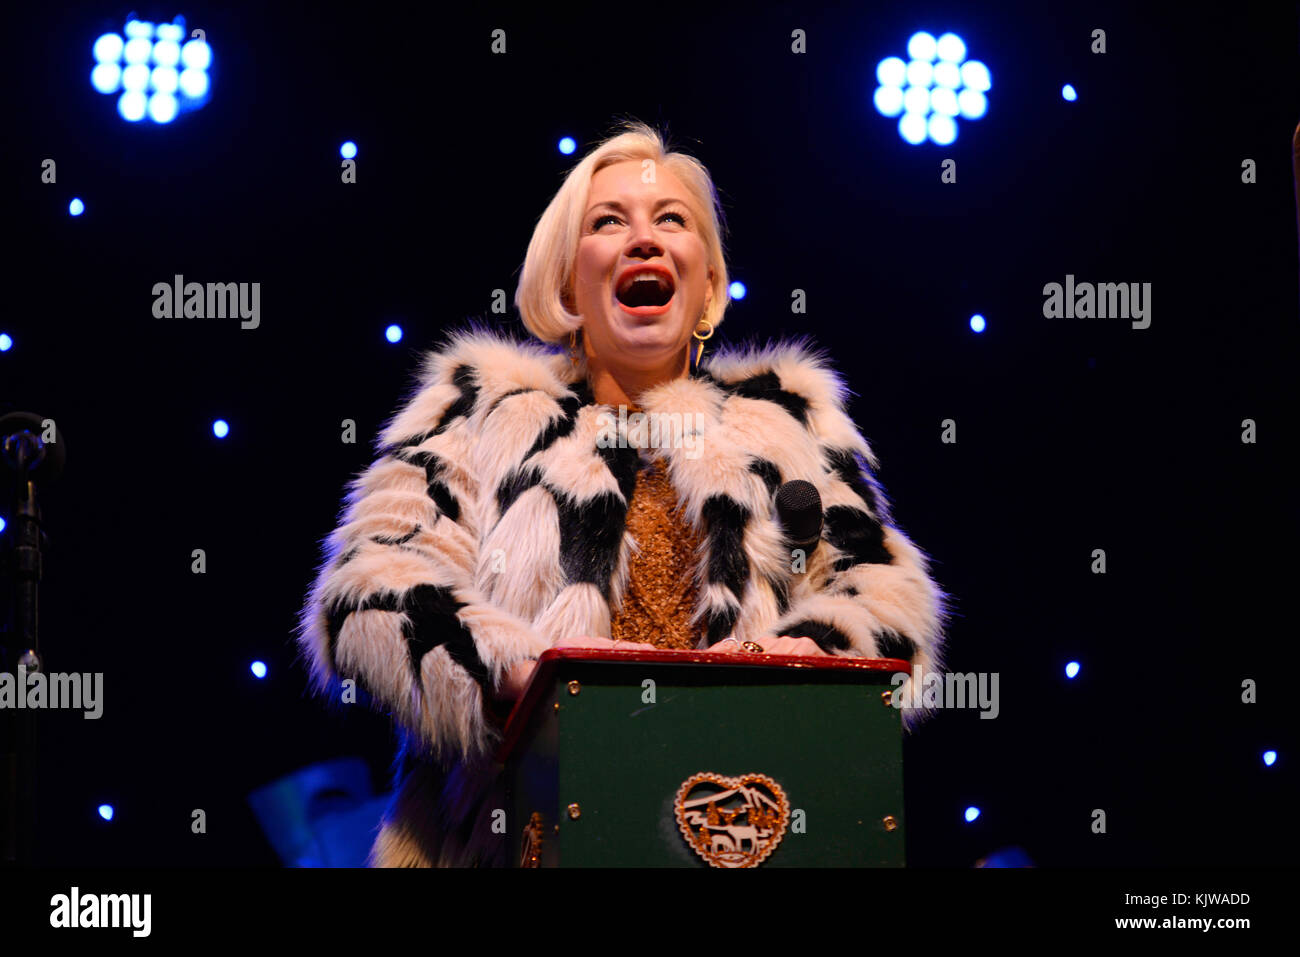 denise-van-outen-switching-on-the-christmas-lights-in-chelmsford-essex-KJWADD.jpg